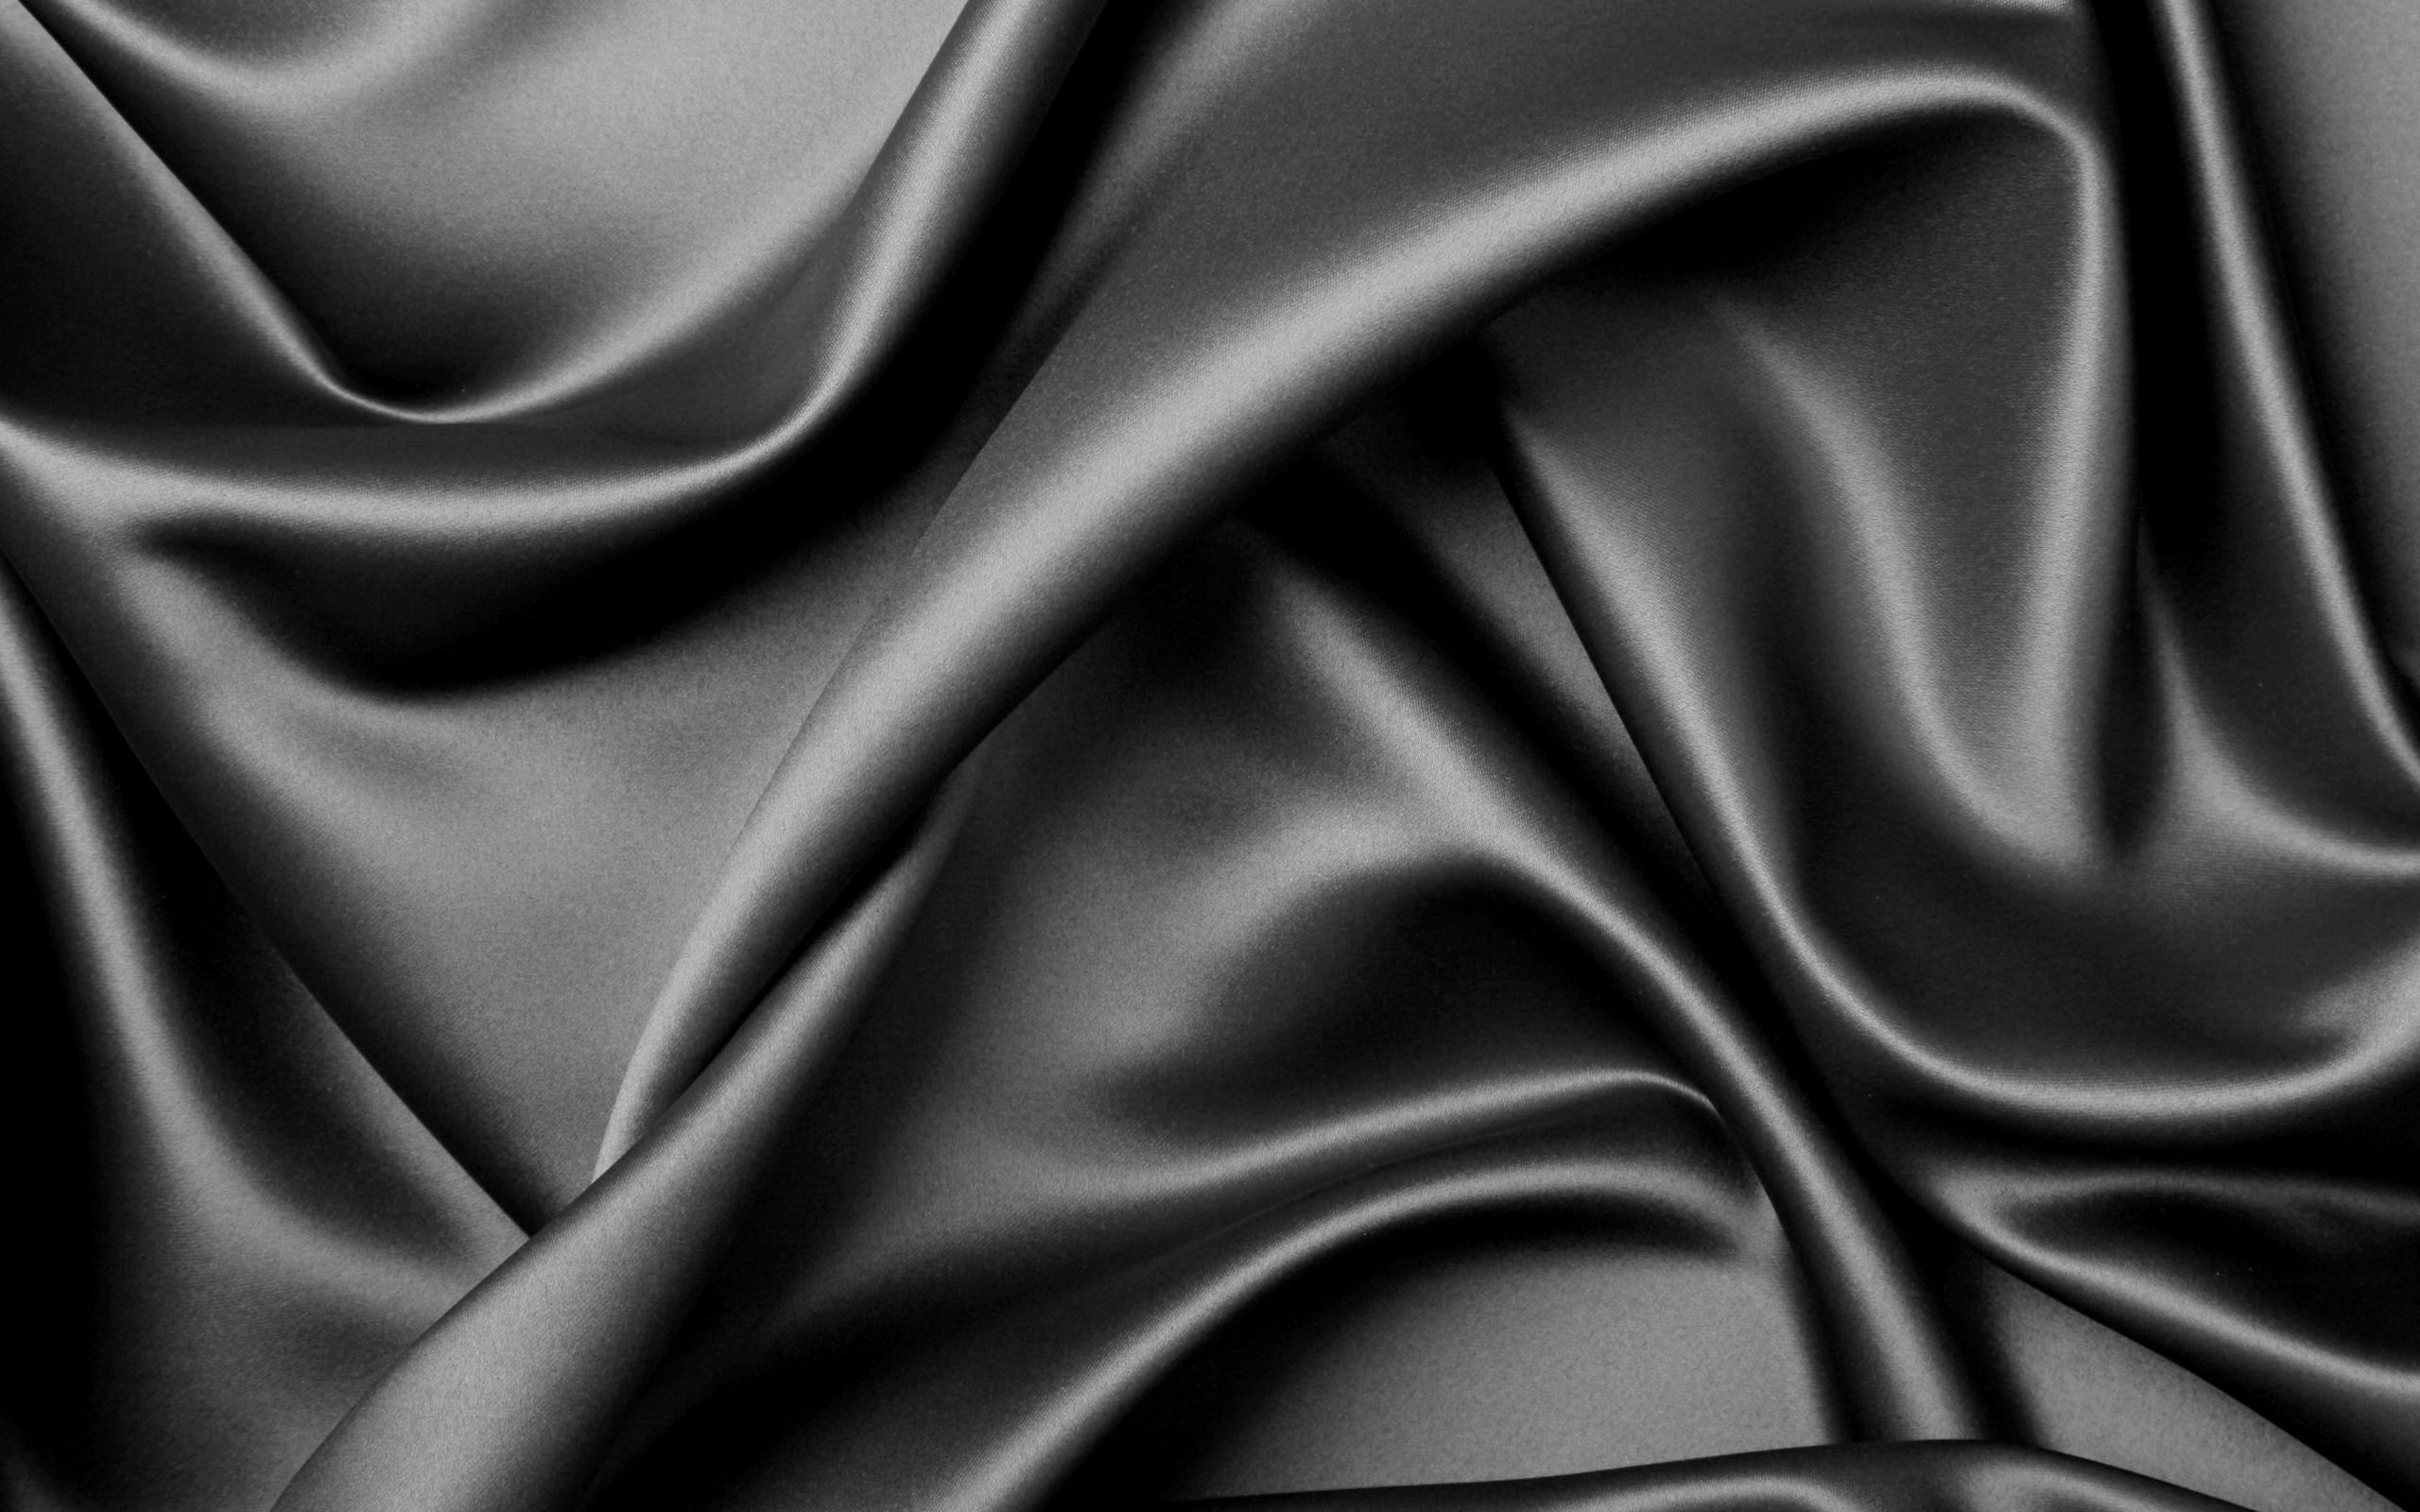 Black Textures Elegant Silk Theme Wallpaper Textured